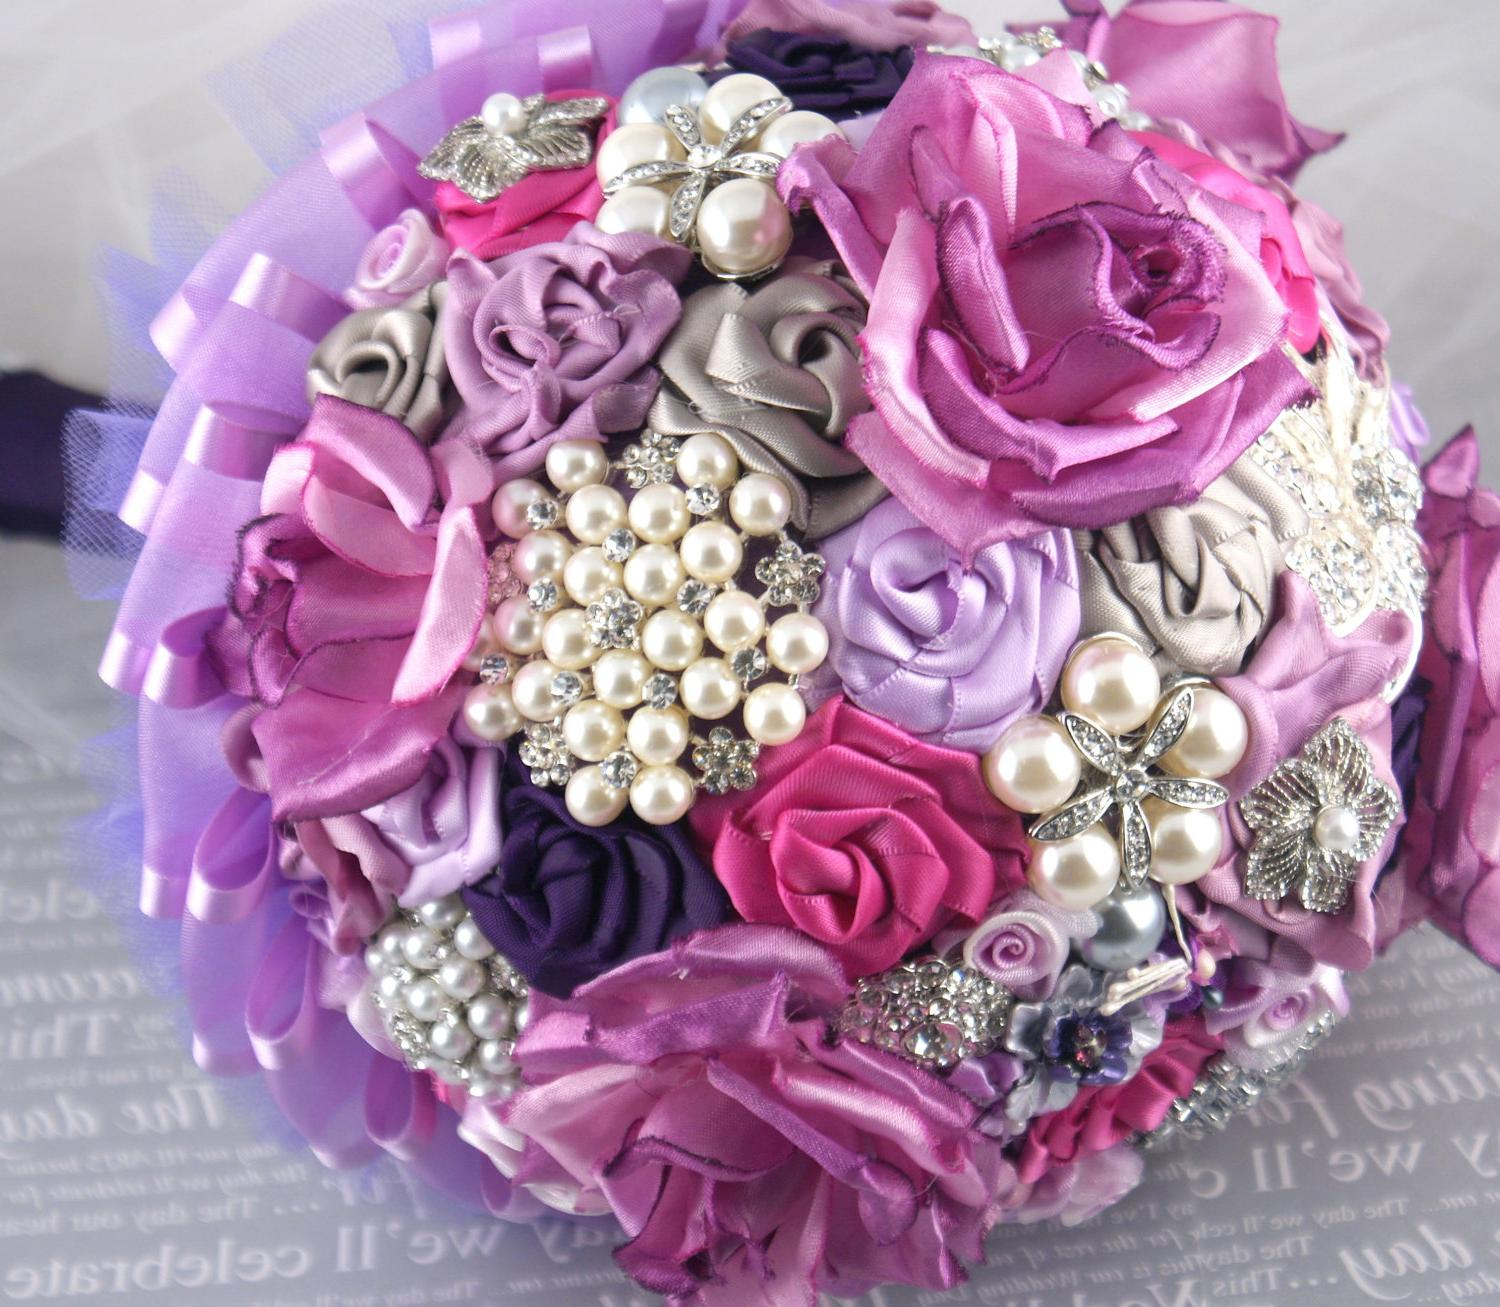 Brooch Bouquet- Bridal Bouquet in Lilac, Plum and light grey, Brooches,